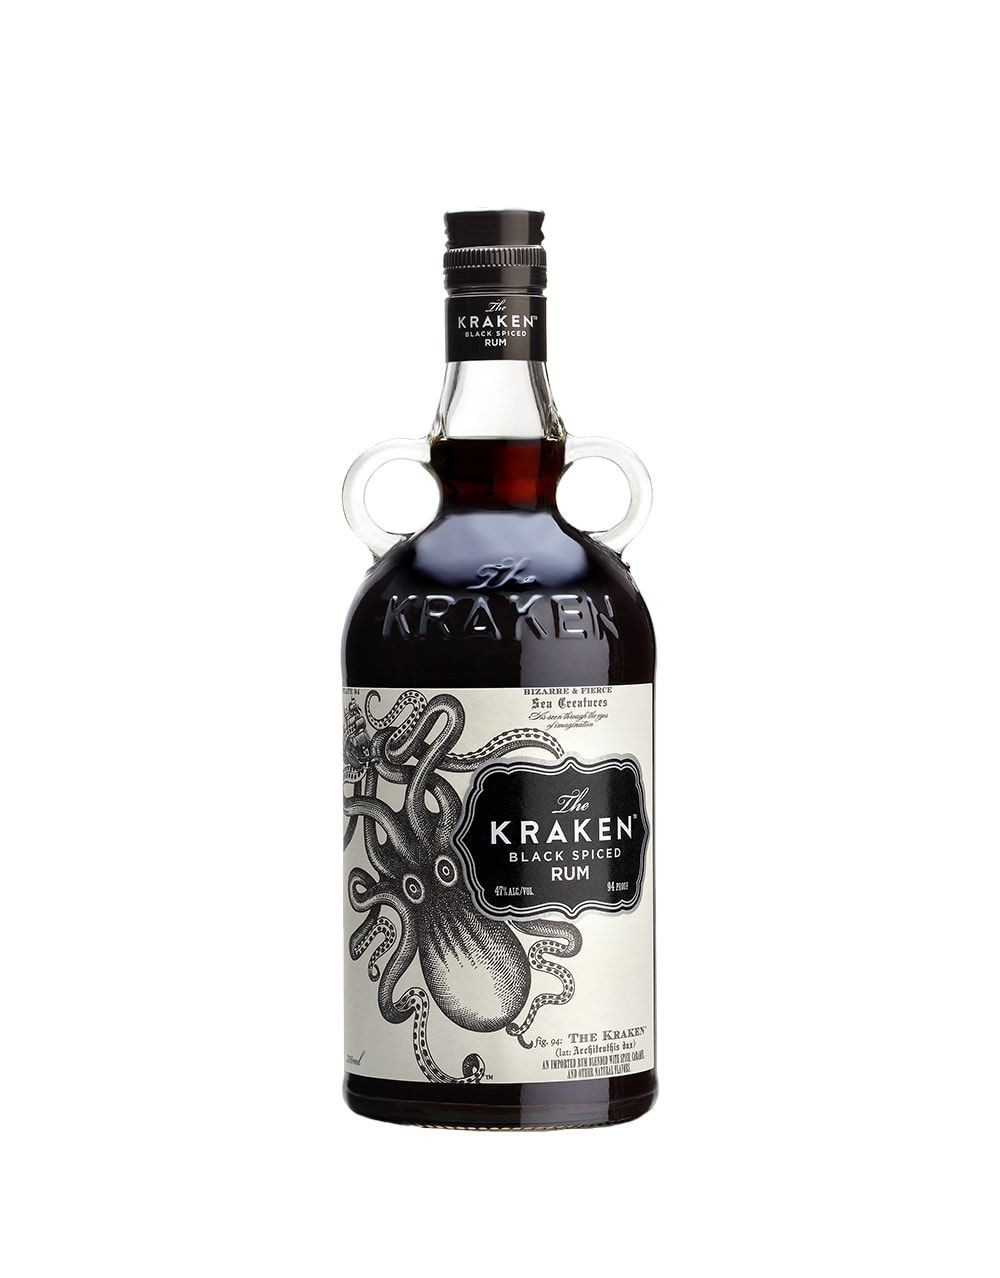 The kraken black spiced rum buy online or send as a - Kraken rum pictures ...